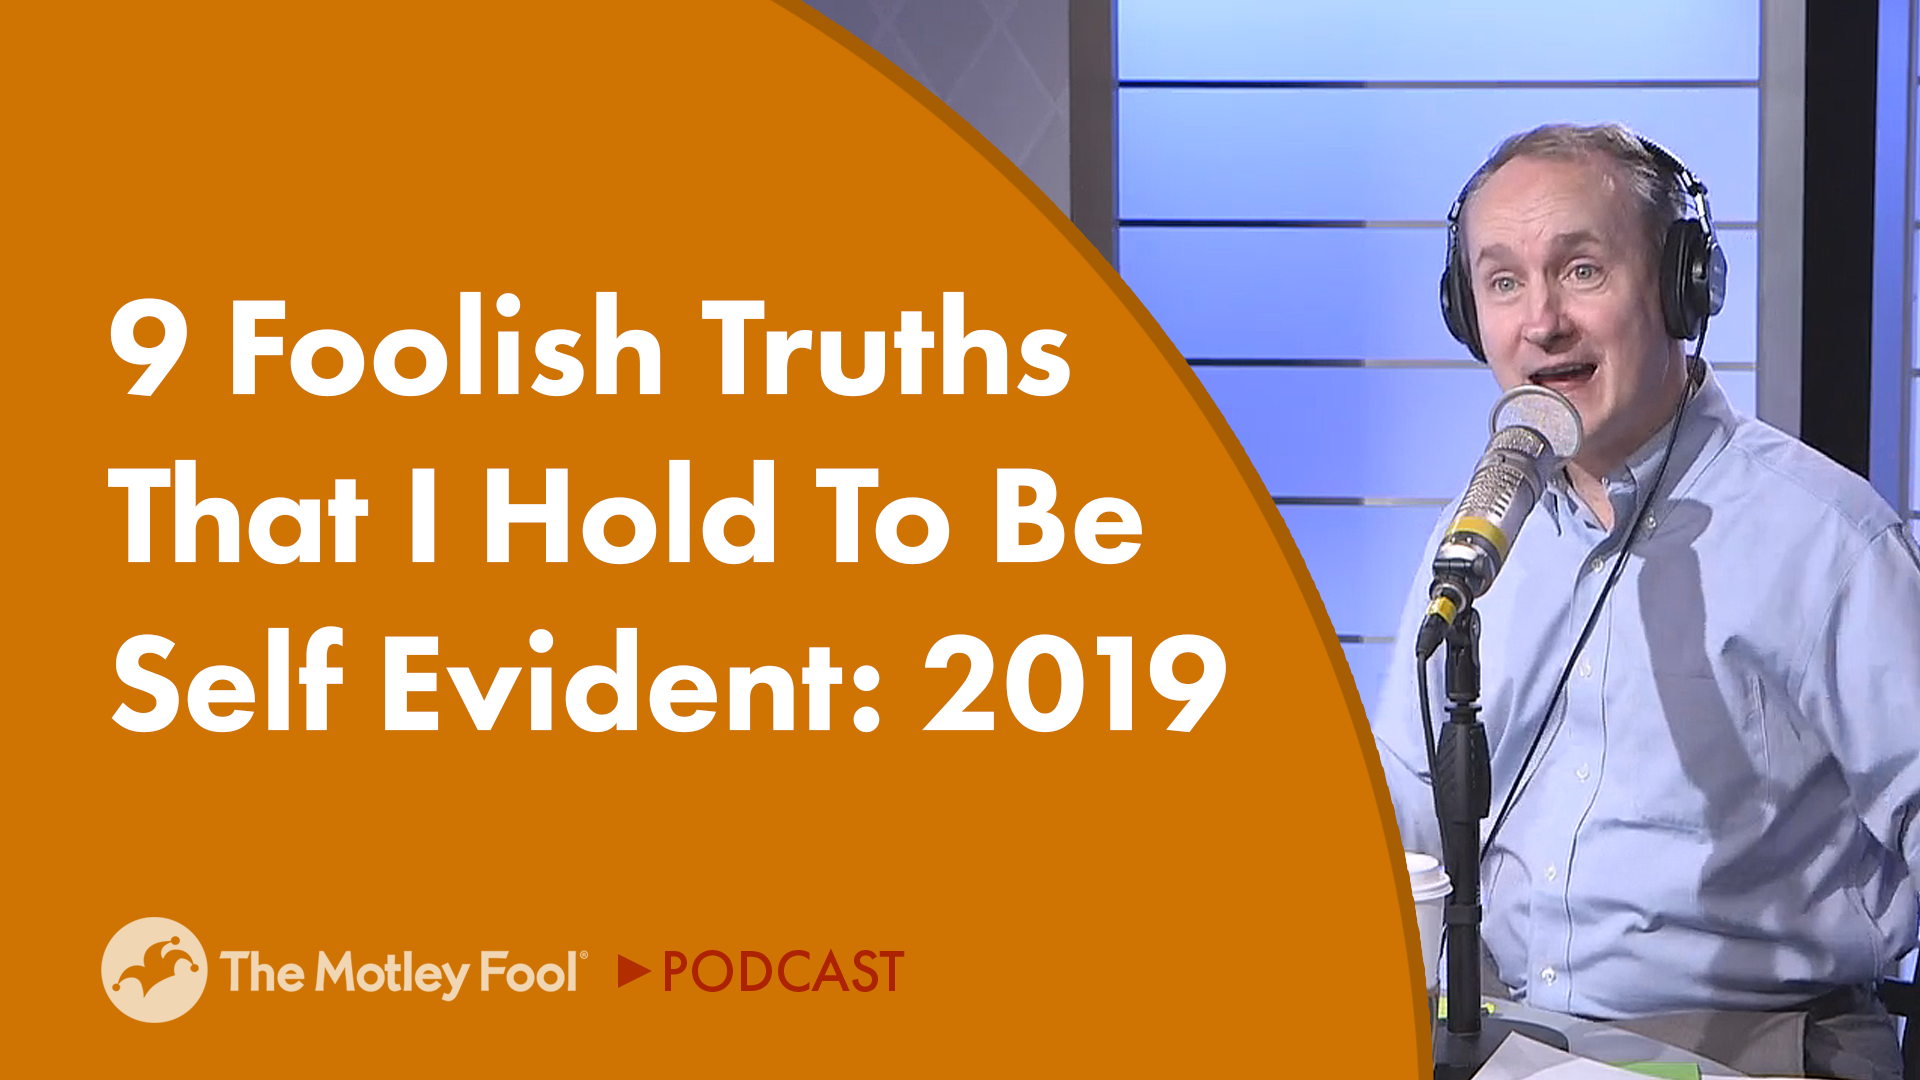 9 Foolish Truths That I Hold to Be Self-Evident: 2019